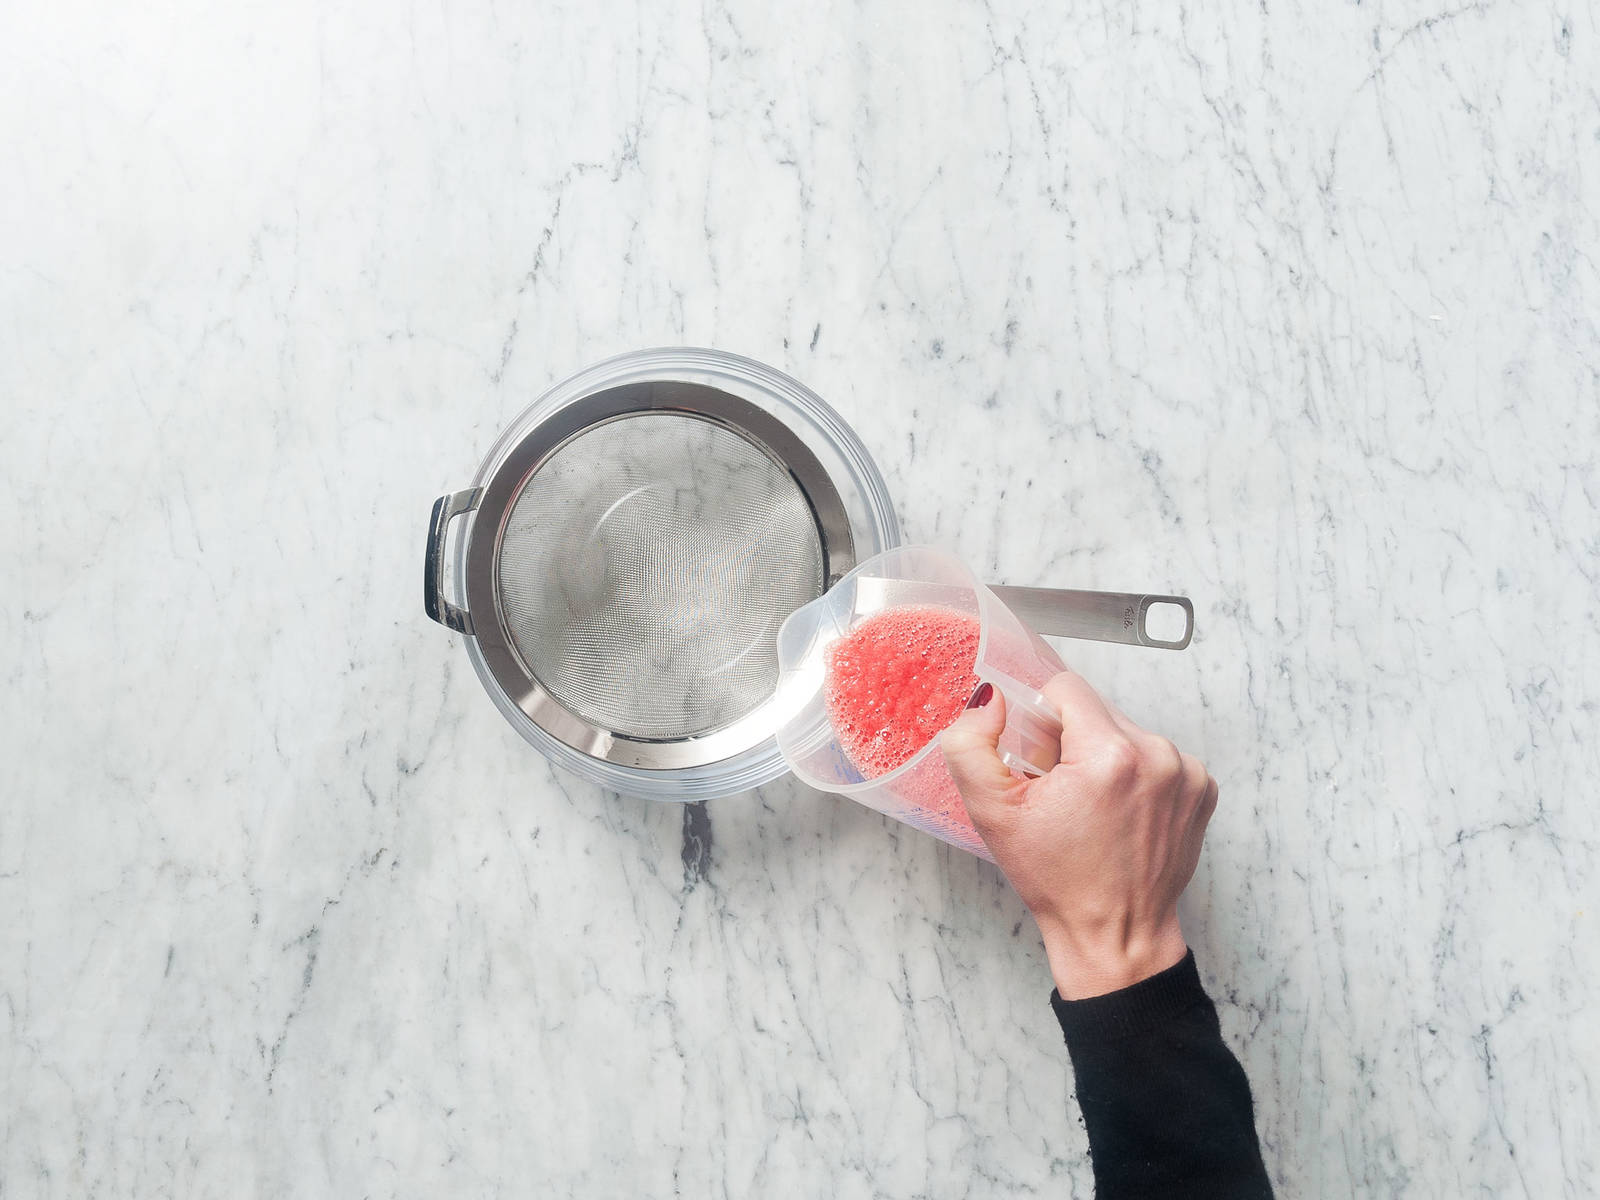 Peel and cube watermelon, then purée. Pass through a sieve into a measuring cup to extract juice.